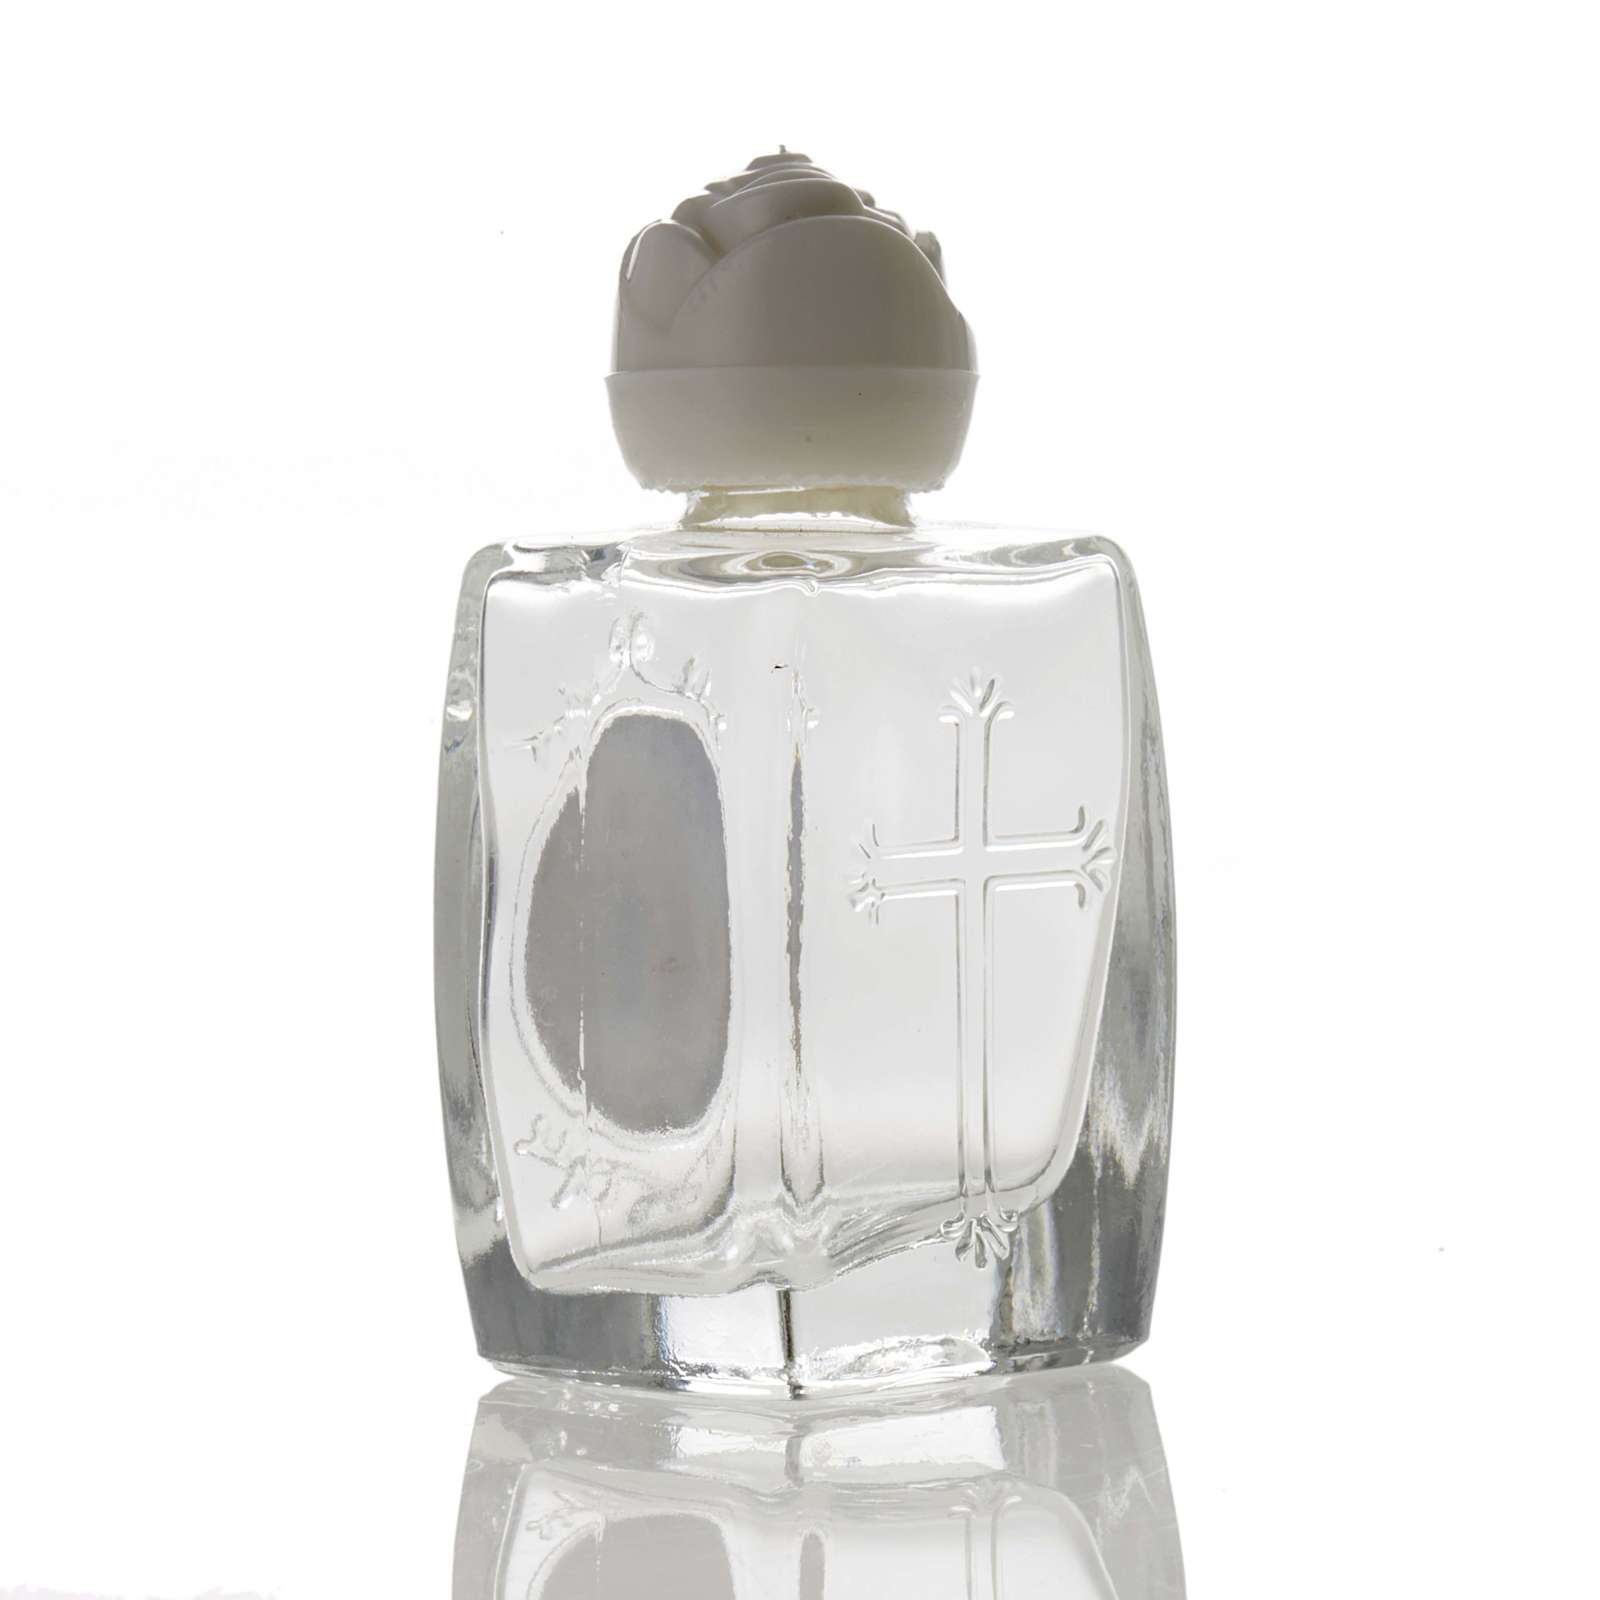 Our Lady of Lourdes holy water bottle 3